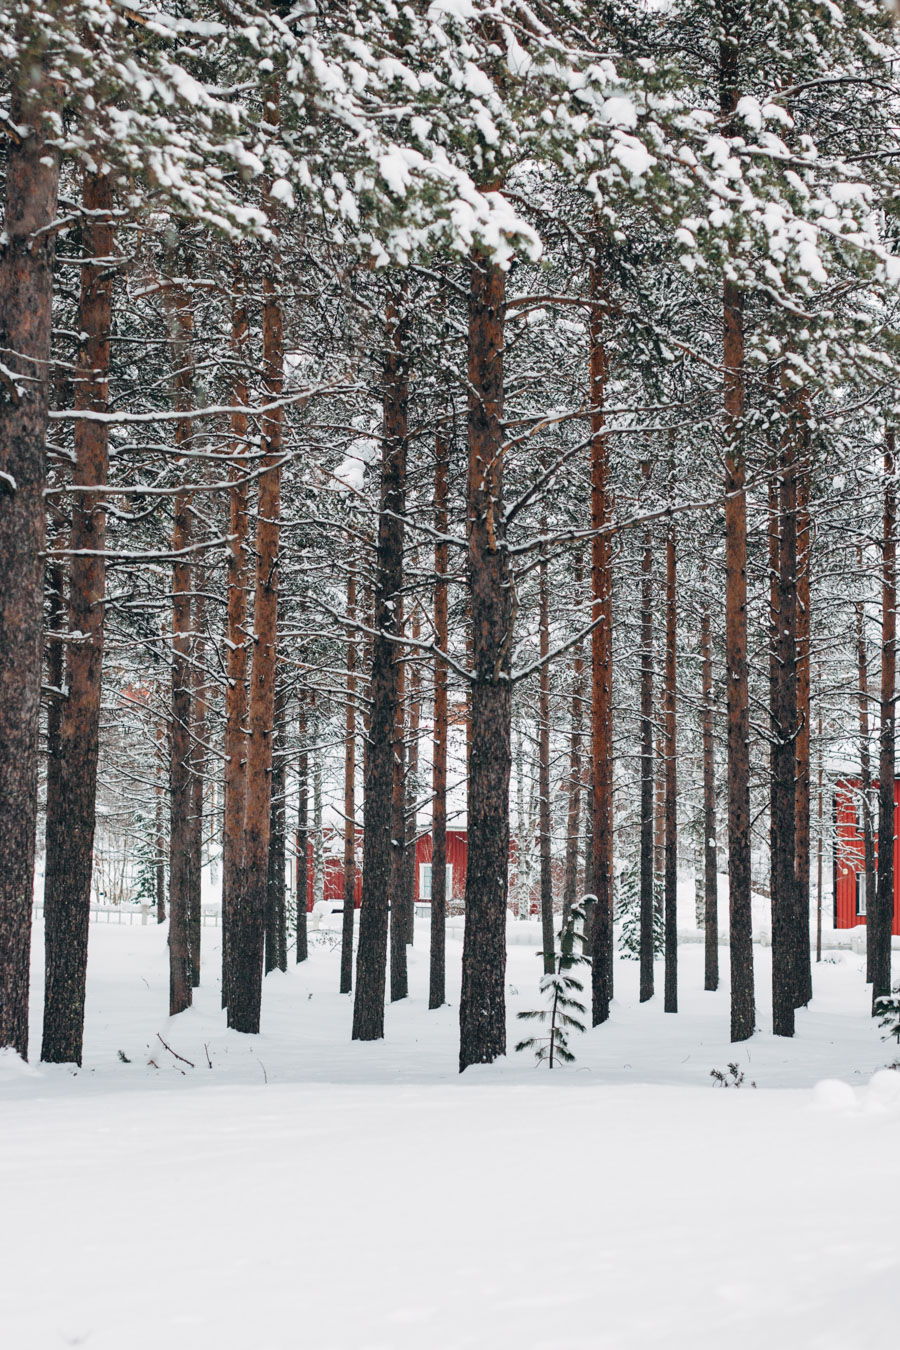 Jokkmokk forest Swedish Lapland